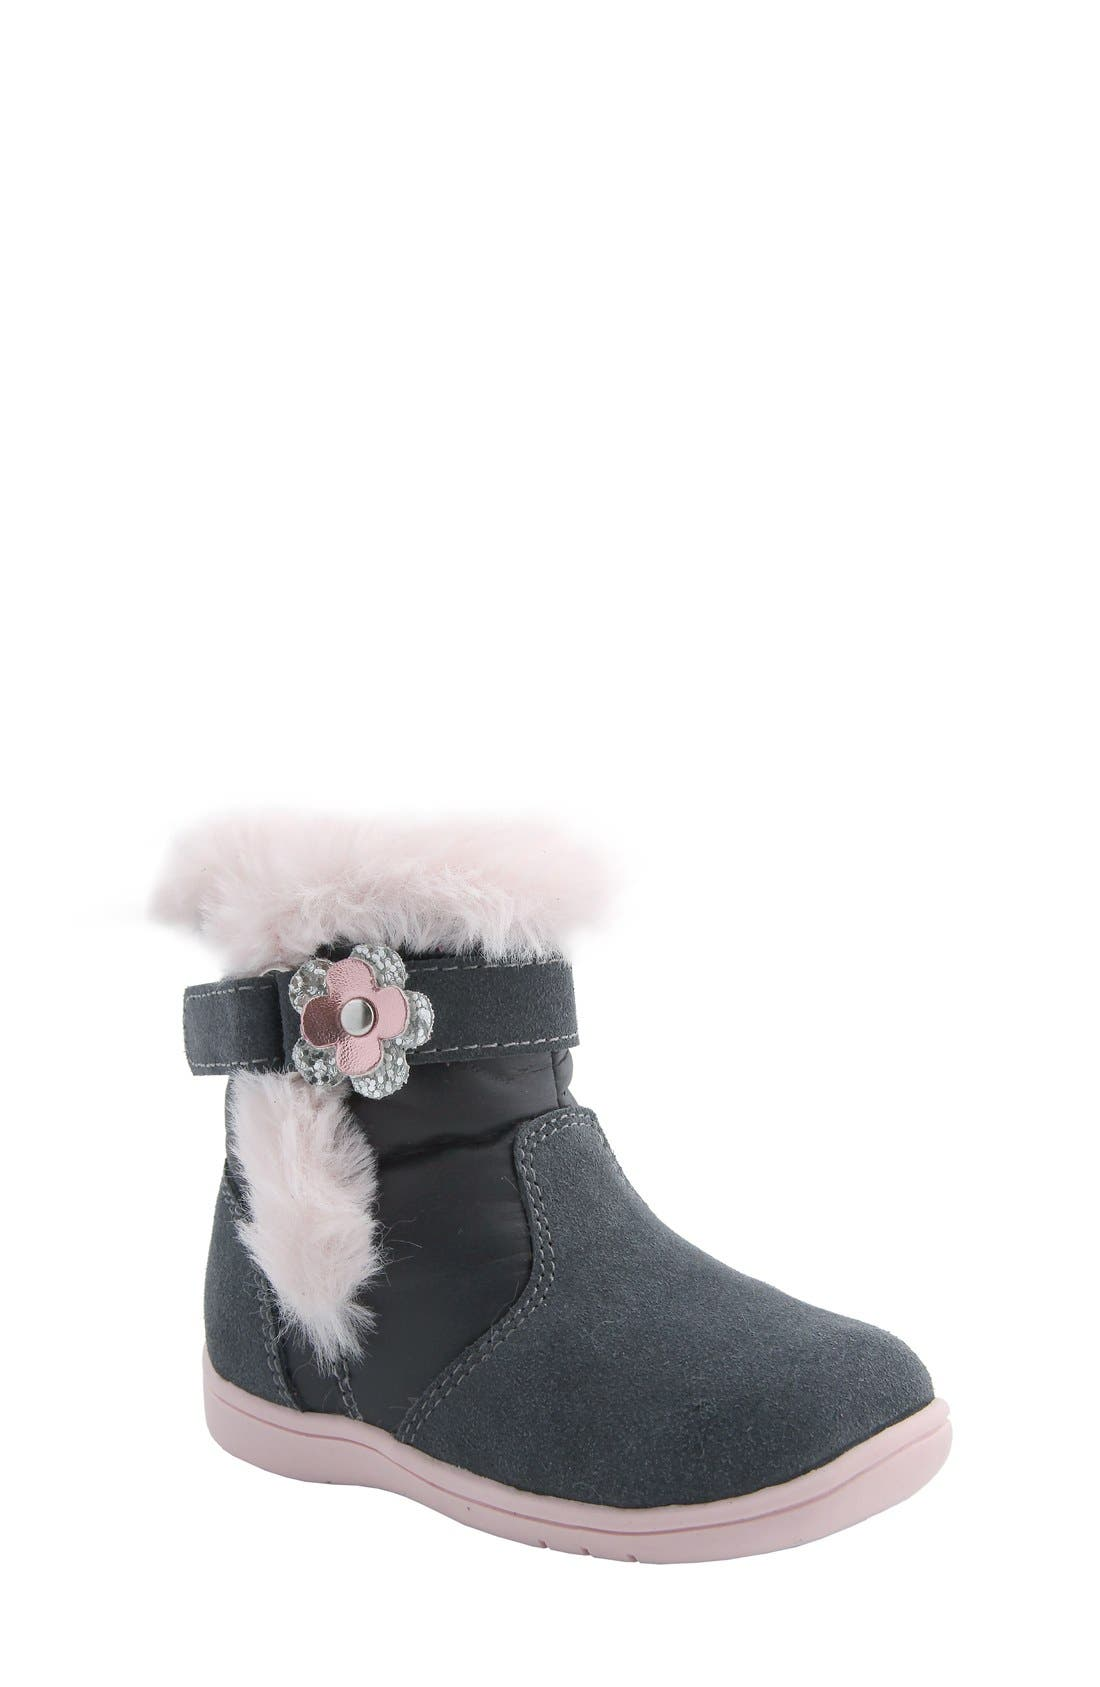 Nina 'Anya' Faux Fur Bootie,                             Main thumbnail 1, color,                             GREY SUEDE